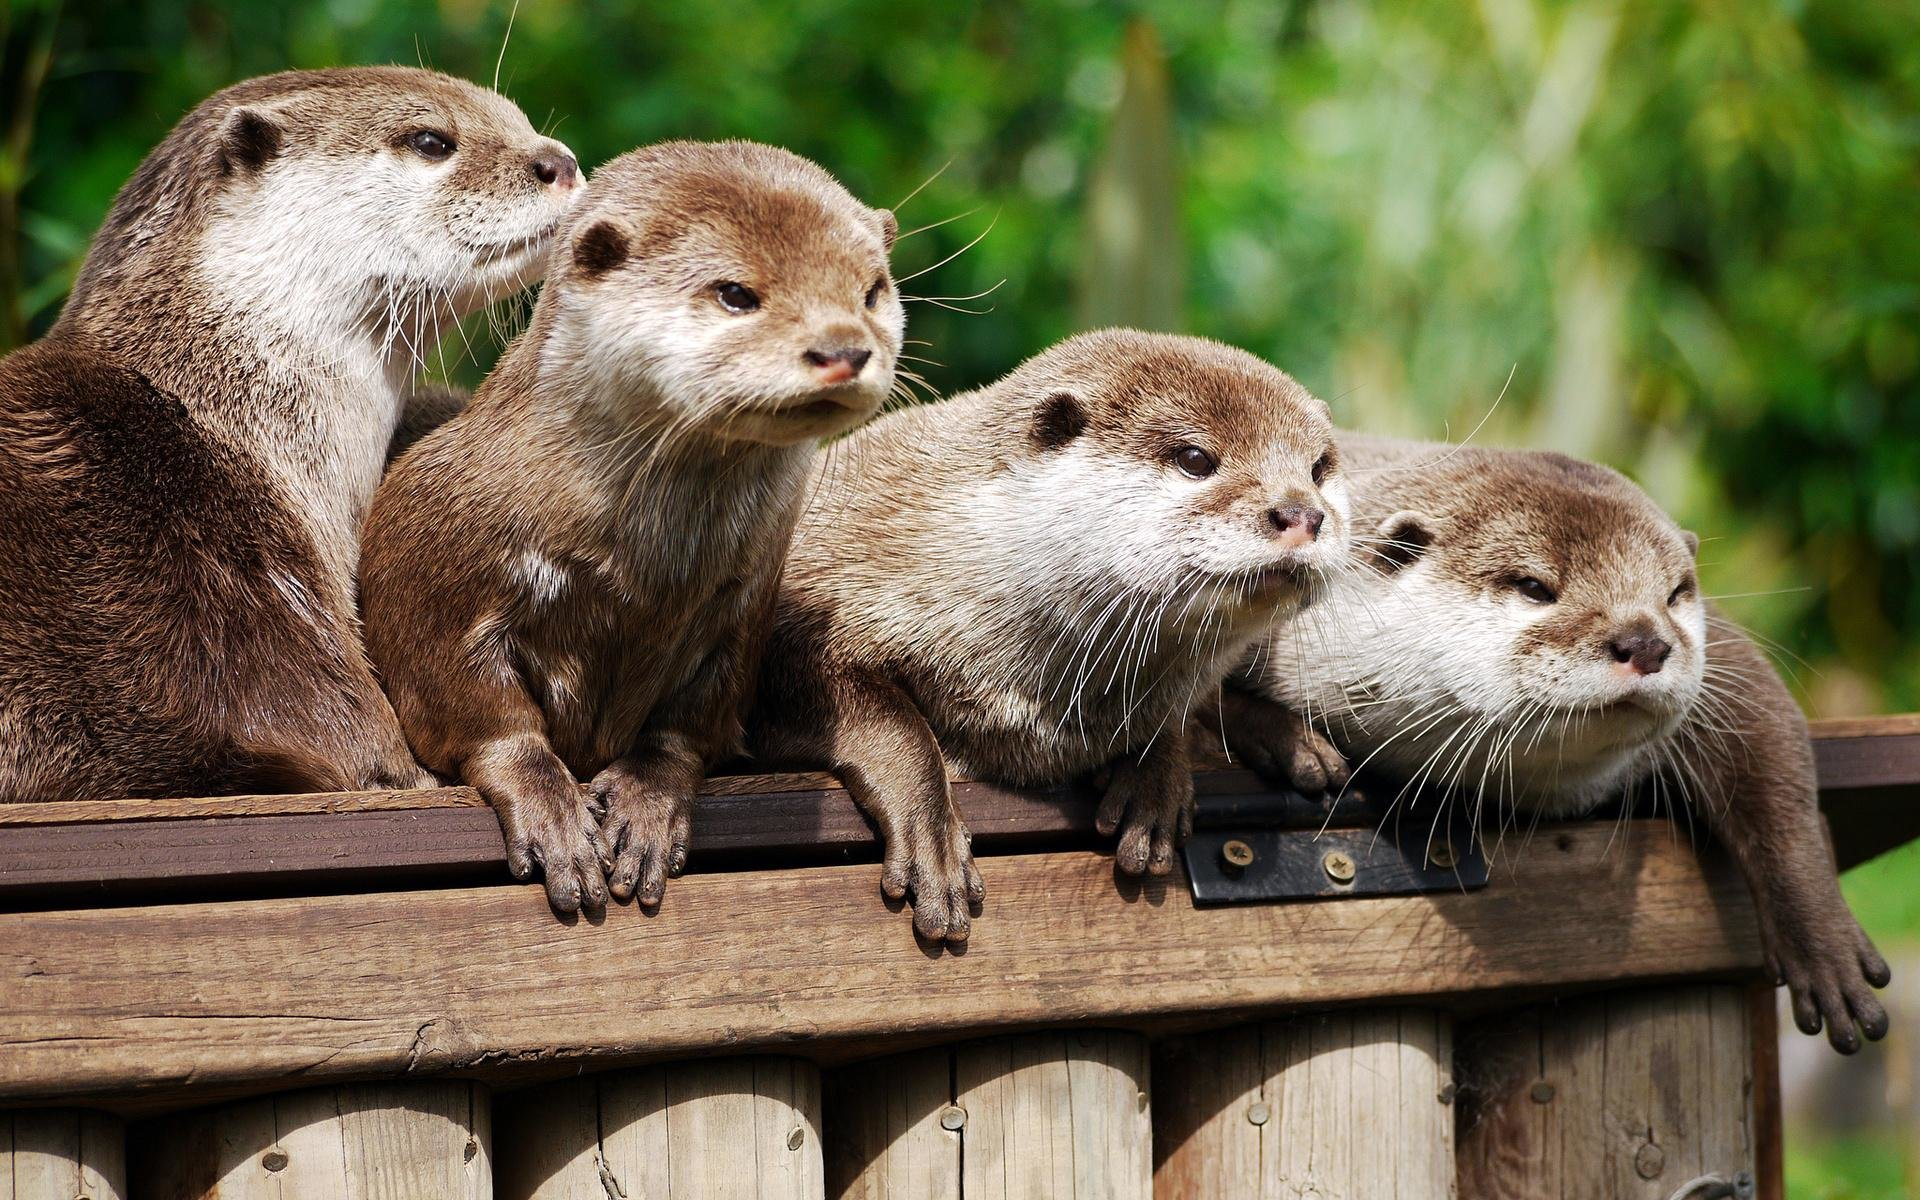 Free Otter high quality wallpaper ID:207595 for hd 1920x1200 desktop